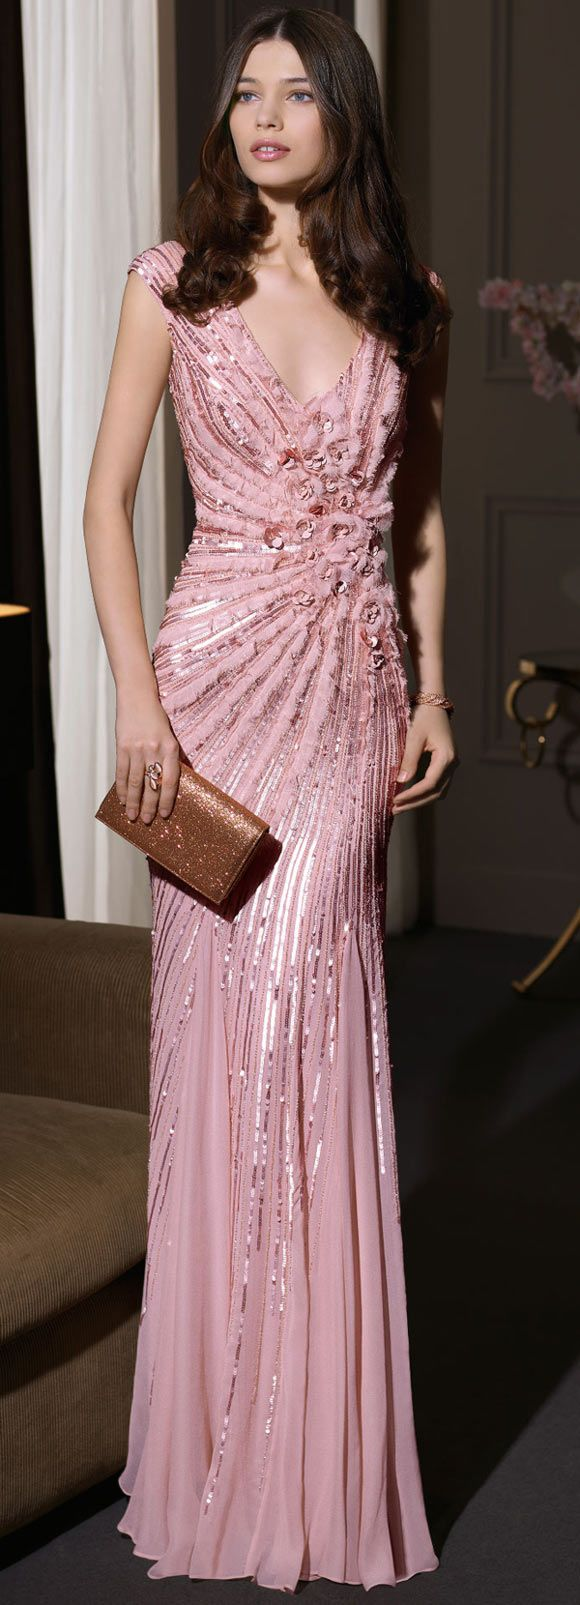 33 best Aire Barcelona images on Pinterest | Evening gowns, Formal ...